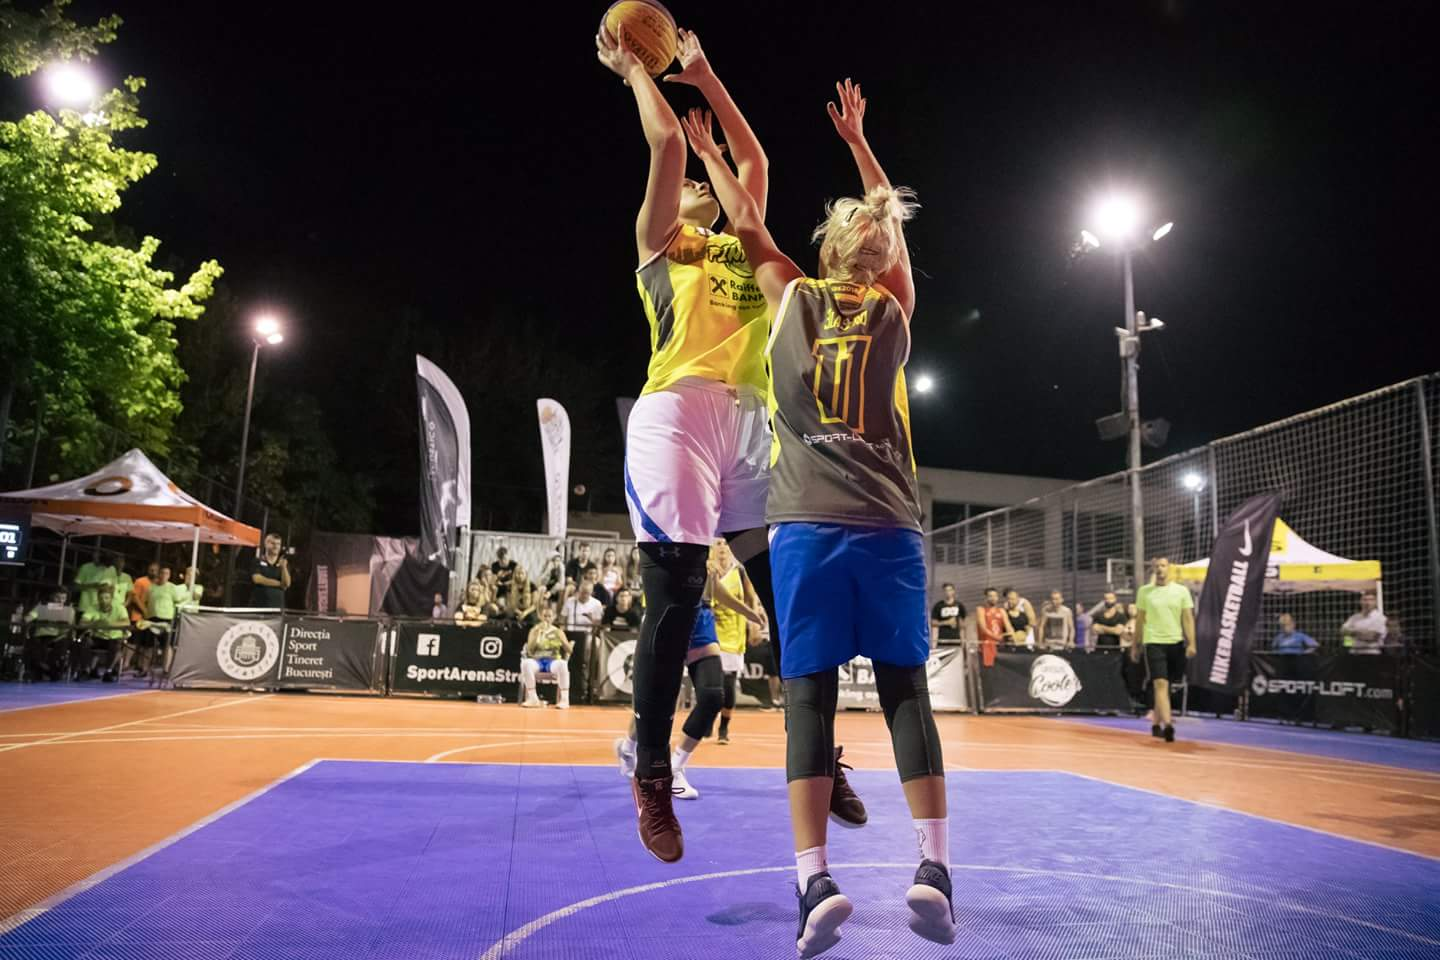 Elisabeth Pavel 3x3 Basketball 2